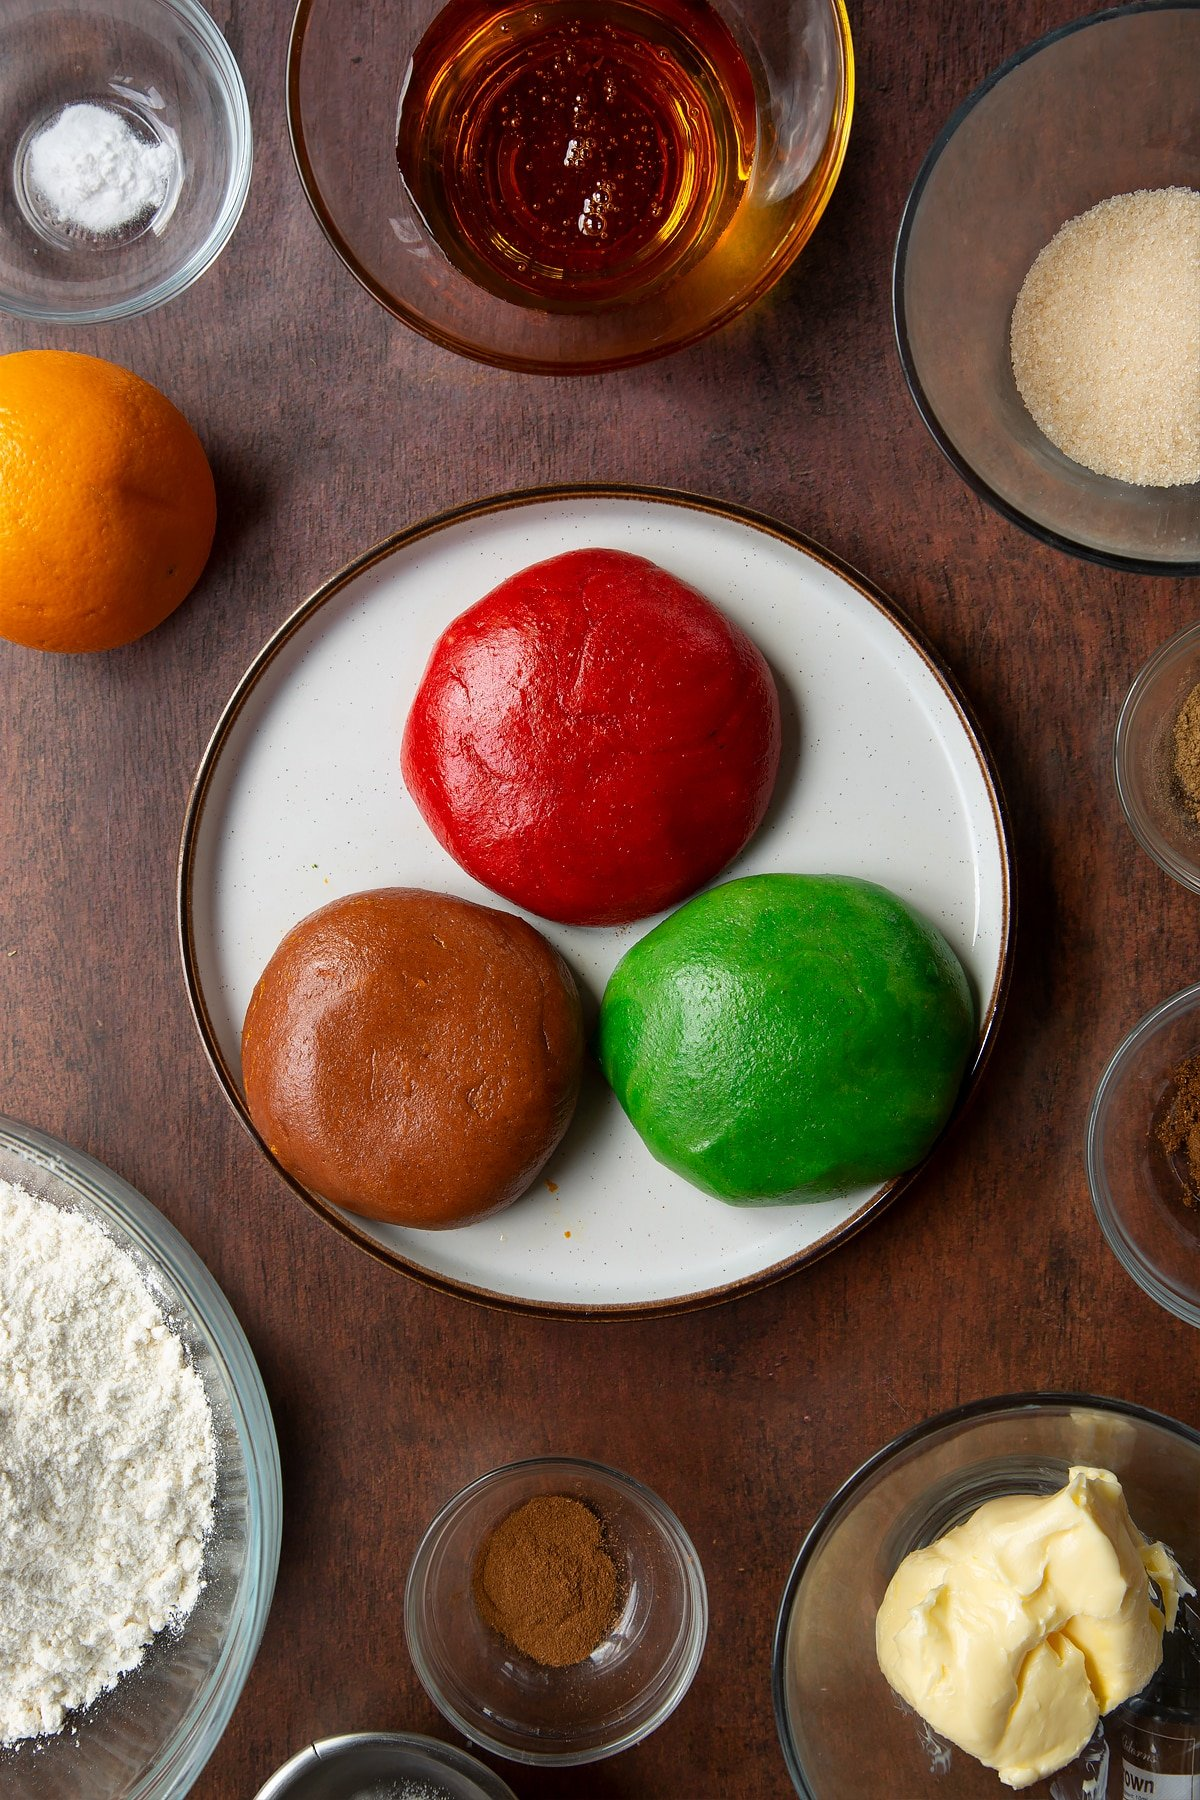 Three balls of coloured and spiced cookie dough on a plate. Ingredients to make autumn cookies surround the plate.